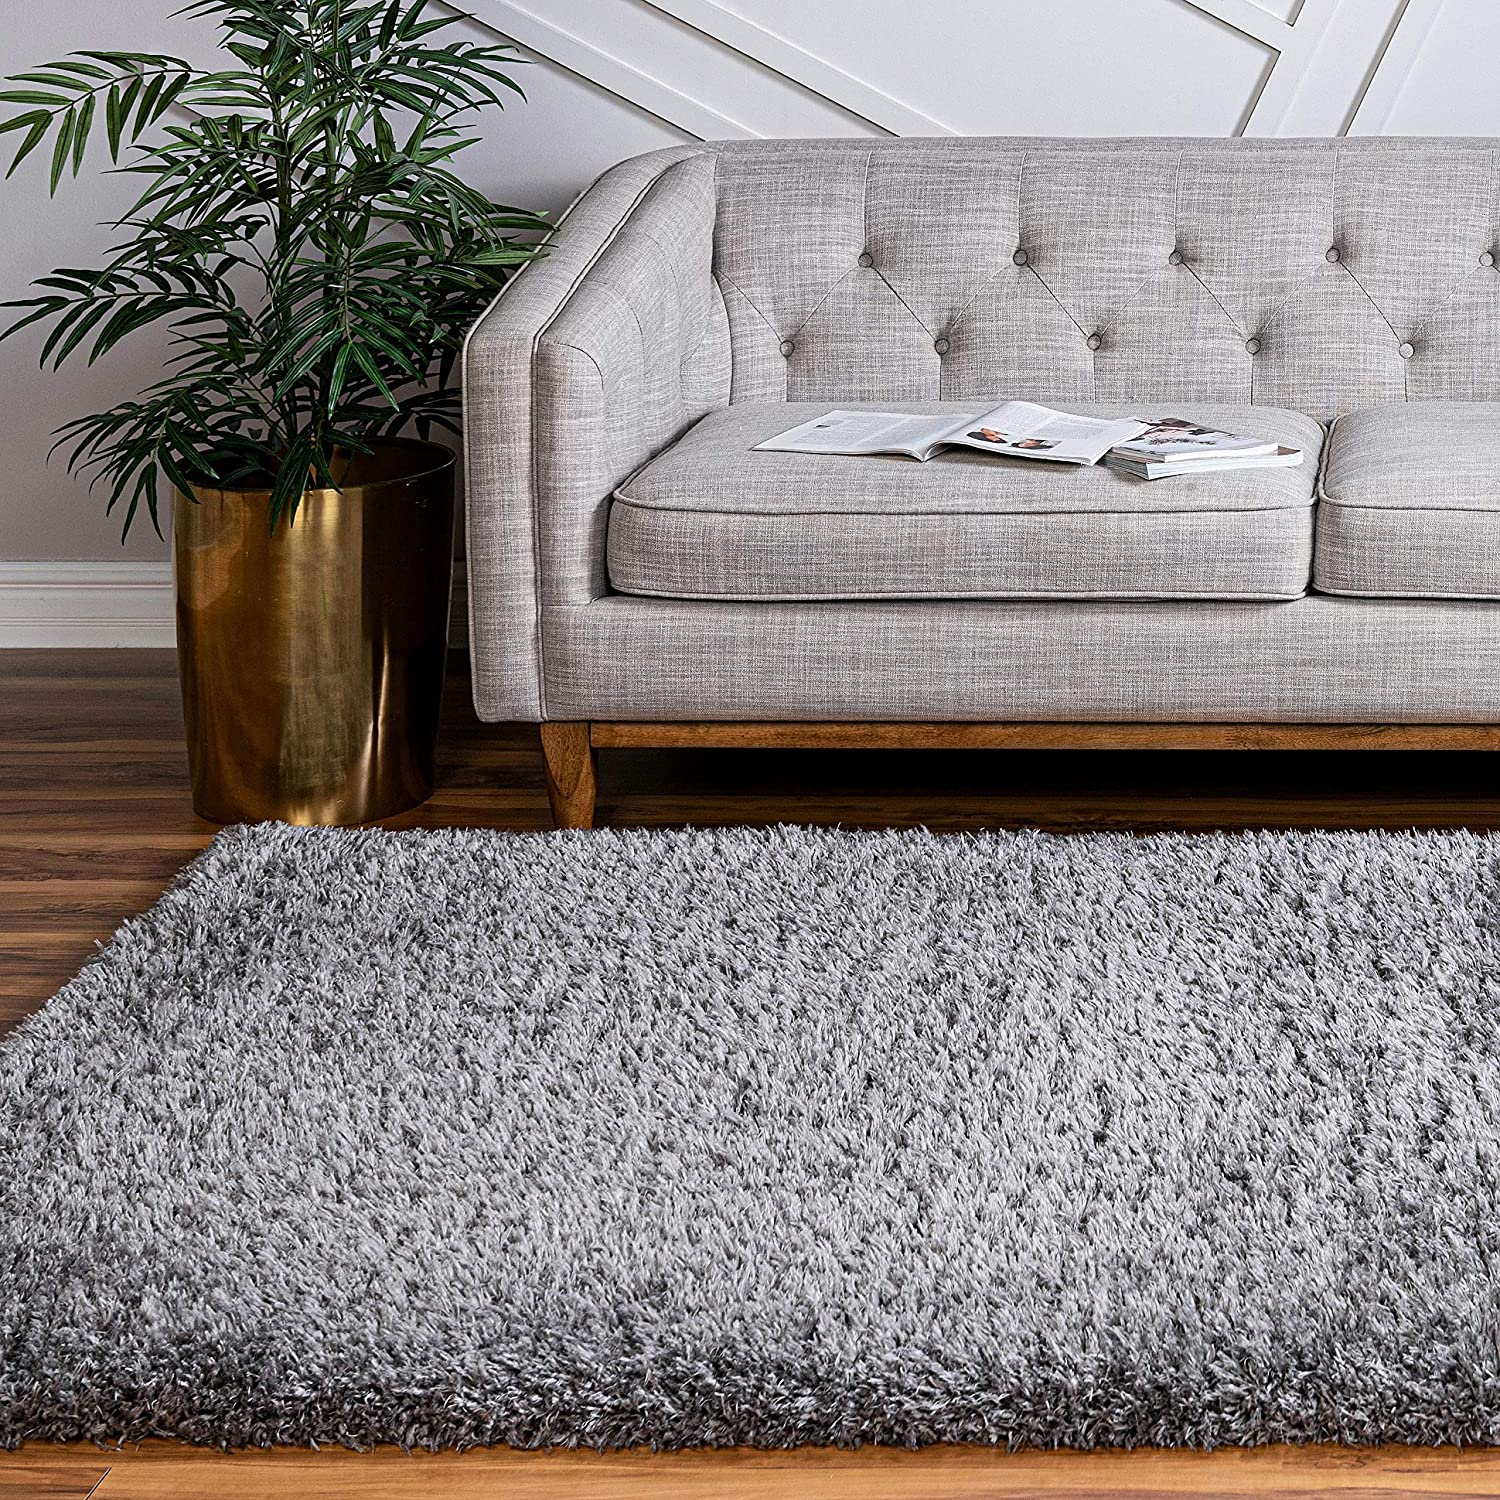 Infinity Collection Solid Shag Area Rug by Rugs.com – Smoke 8' x 11' High-Pile Plush Shag Rug Perfect for Living Rooms, Bedrooms, Dining Rooms and More